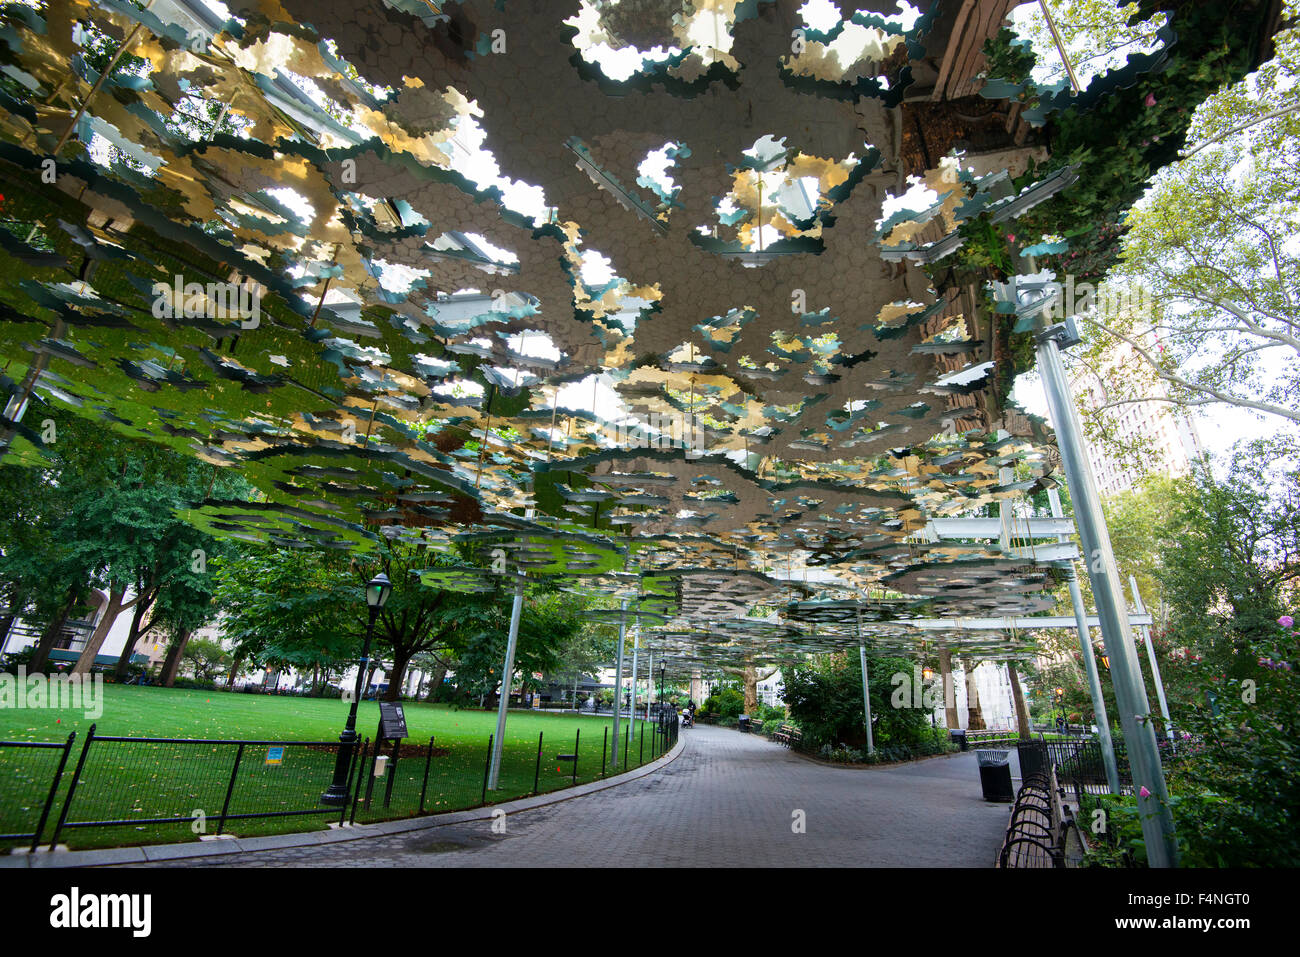 Public Art Made Up Of Mirrors By Fata Morgana In Madison Square Park Stock Photo Alamy